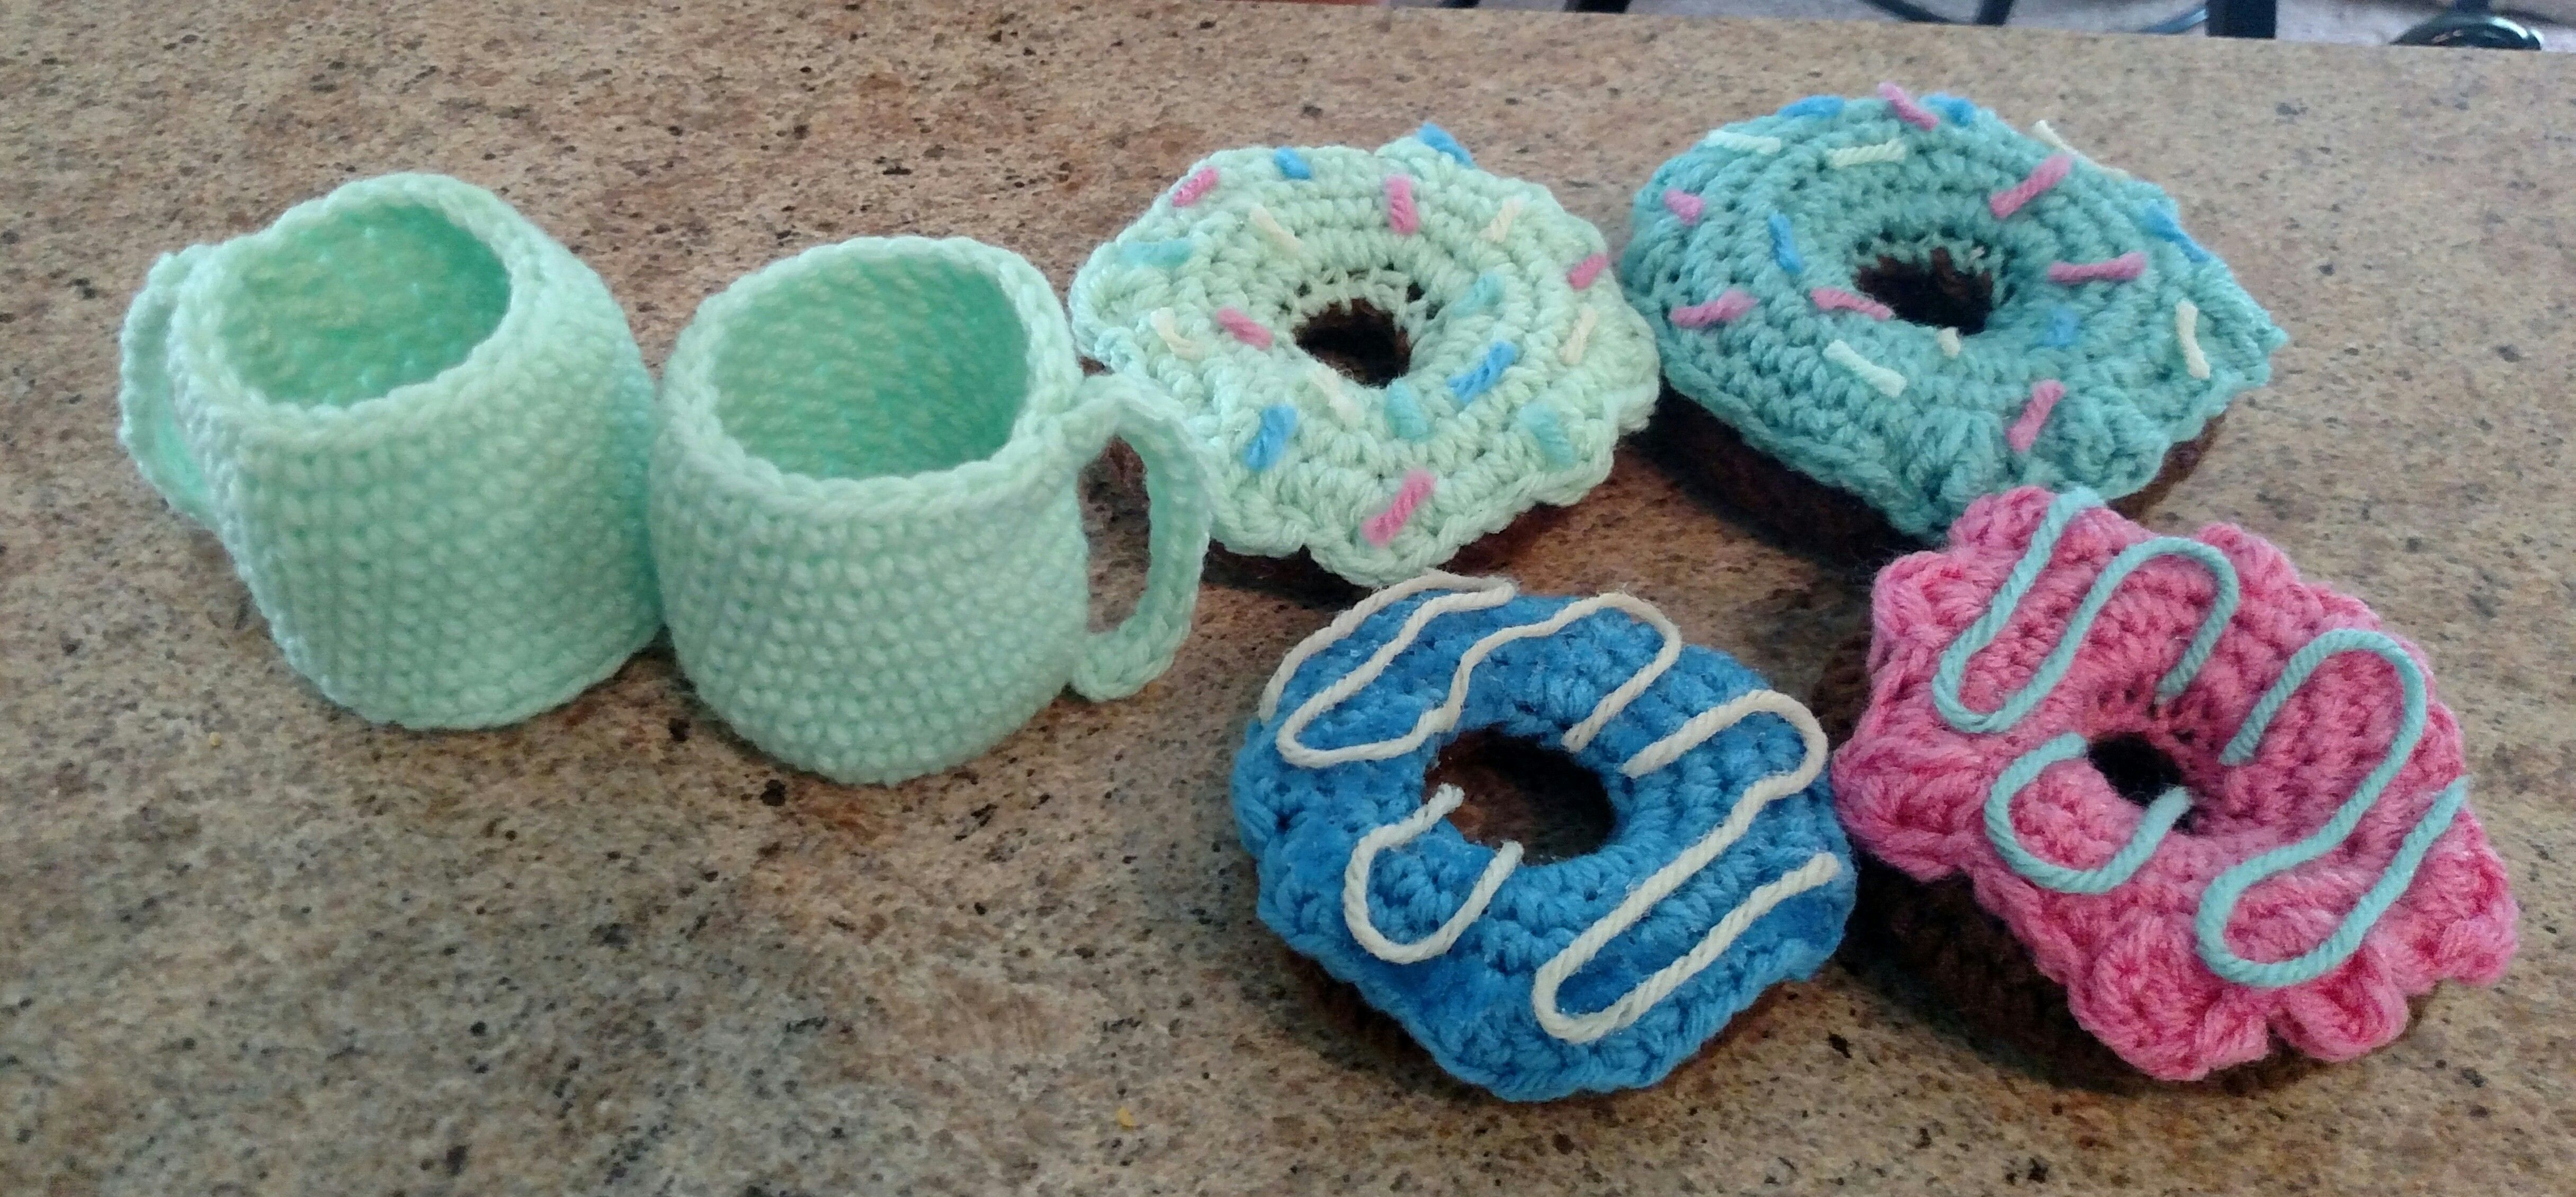 Pin de TraverseBayCrochet en Free Crochet Patterns | Pinterest